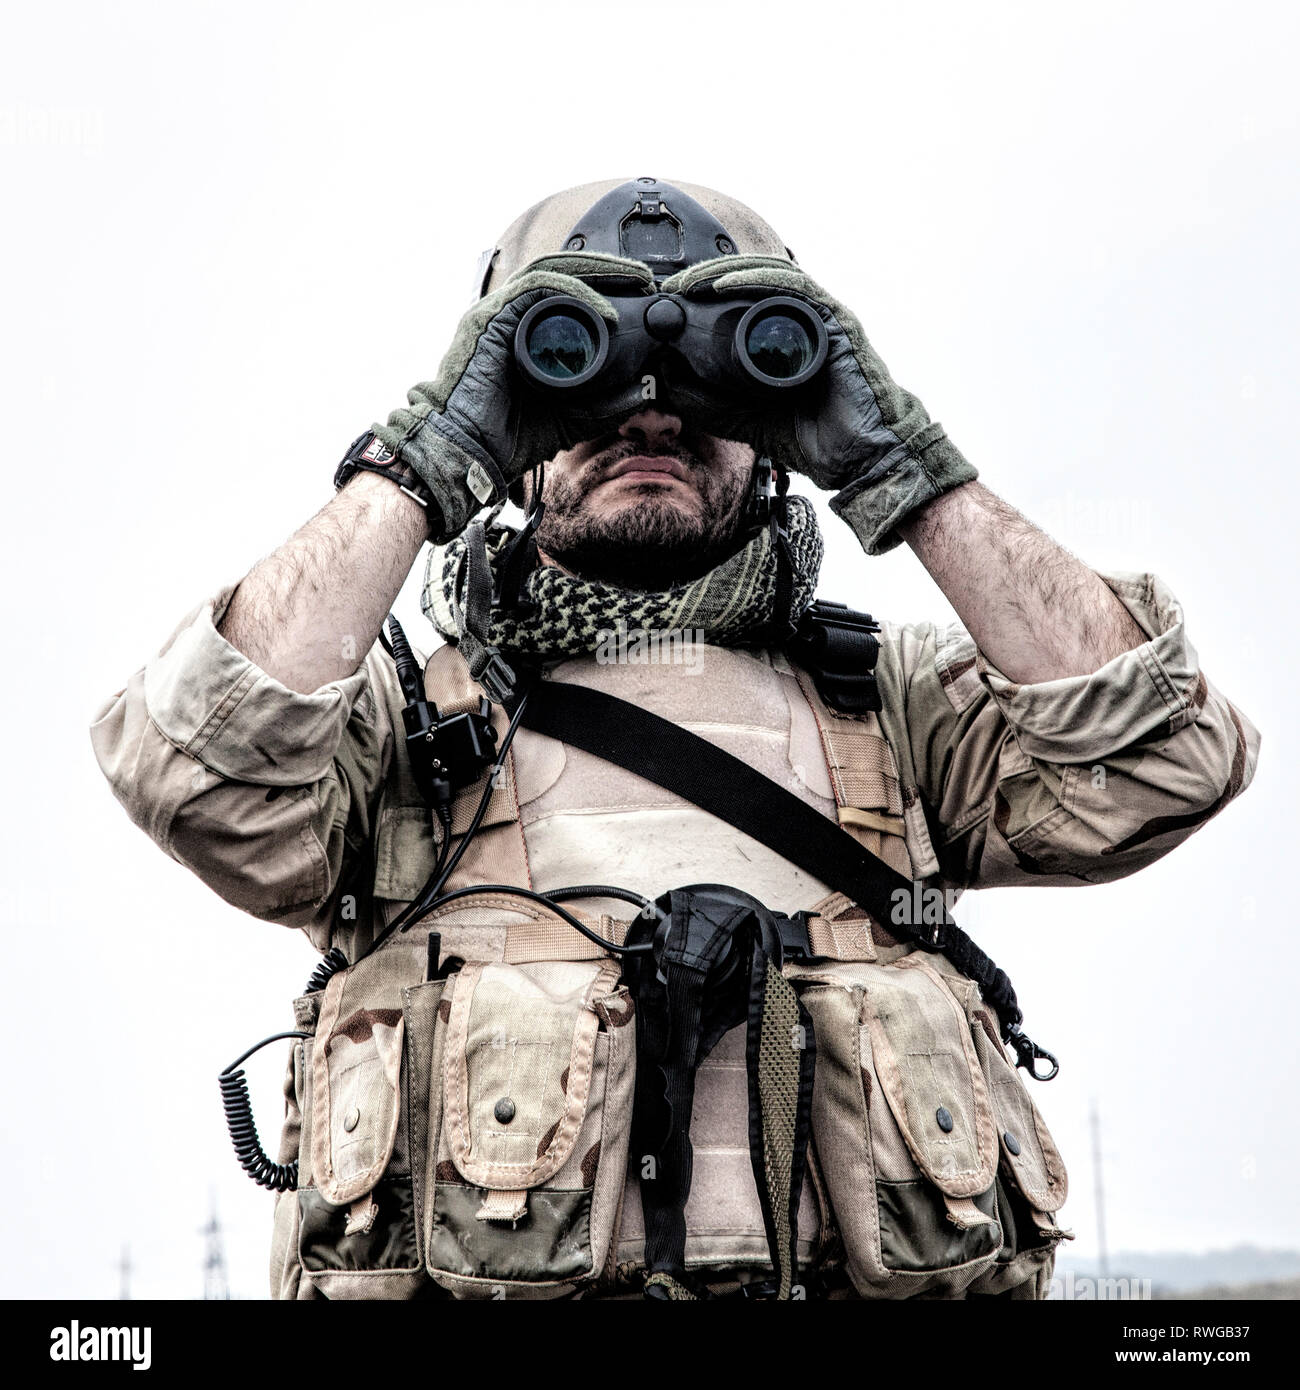 Navy SEAL scout looking through binoculars to observe terrain and search for enemy targets. - Stock Image